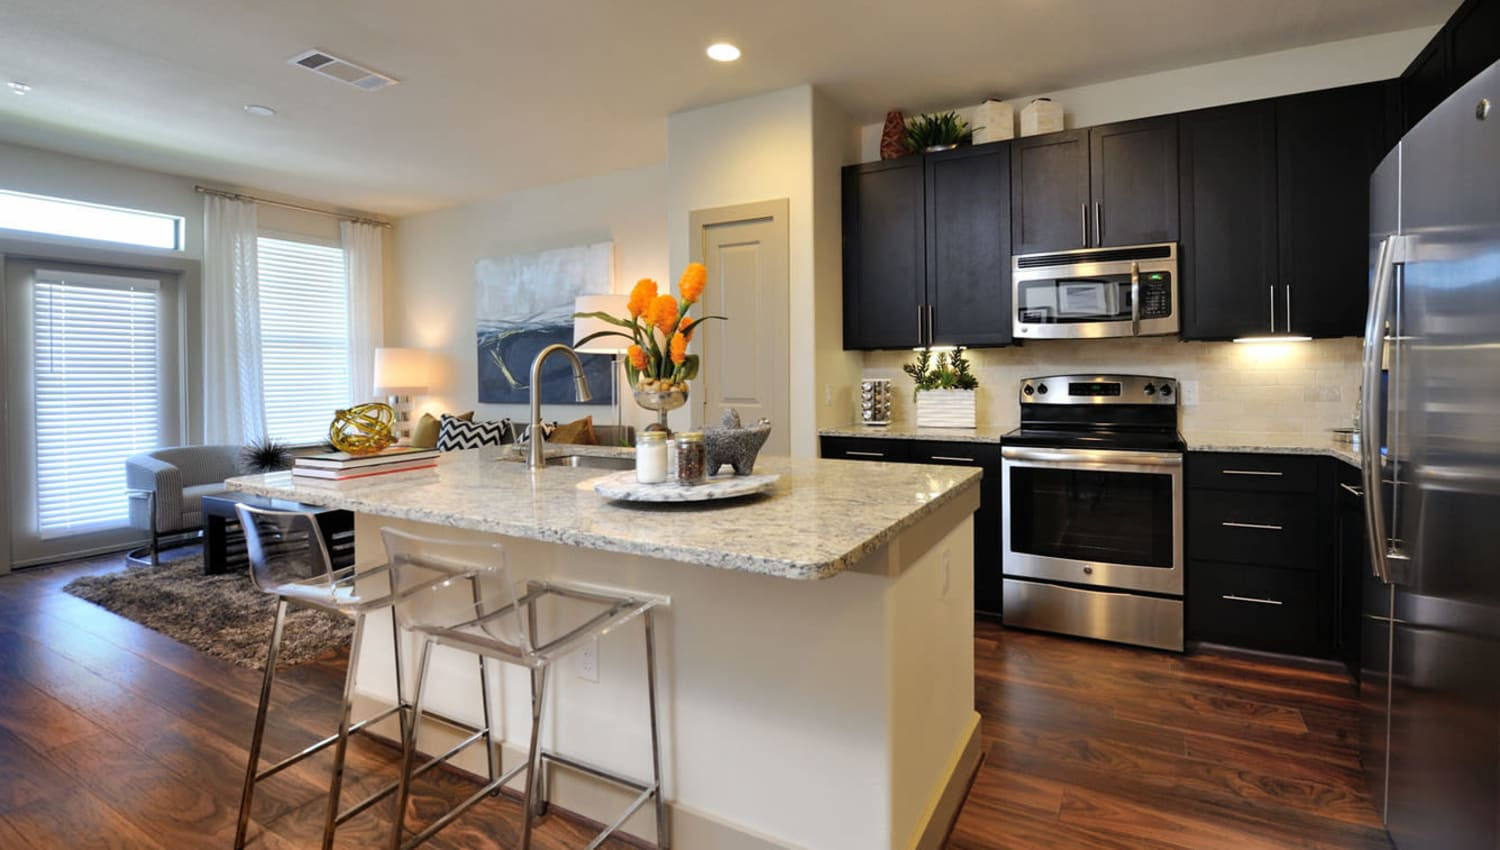 Kitchen and living room at Olympus Falcon Landing in Katy, Texas